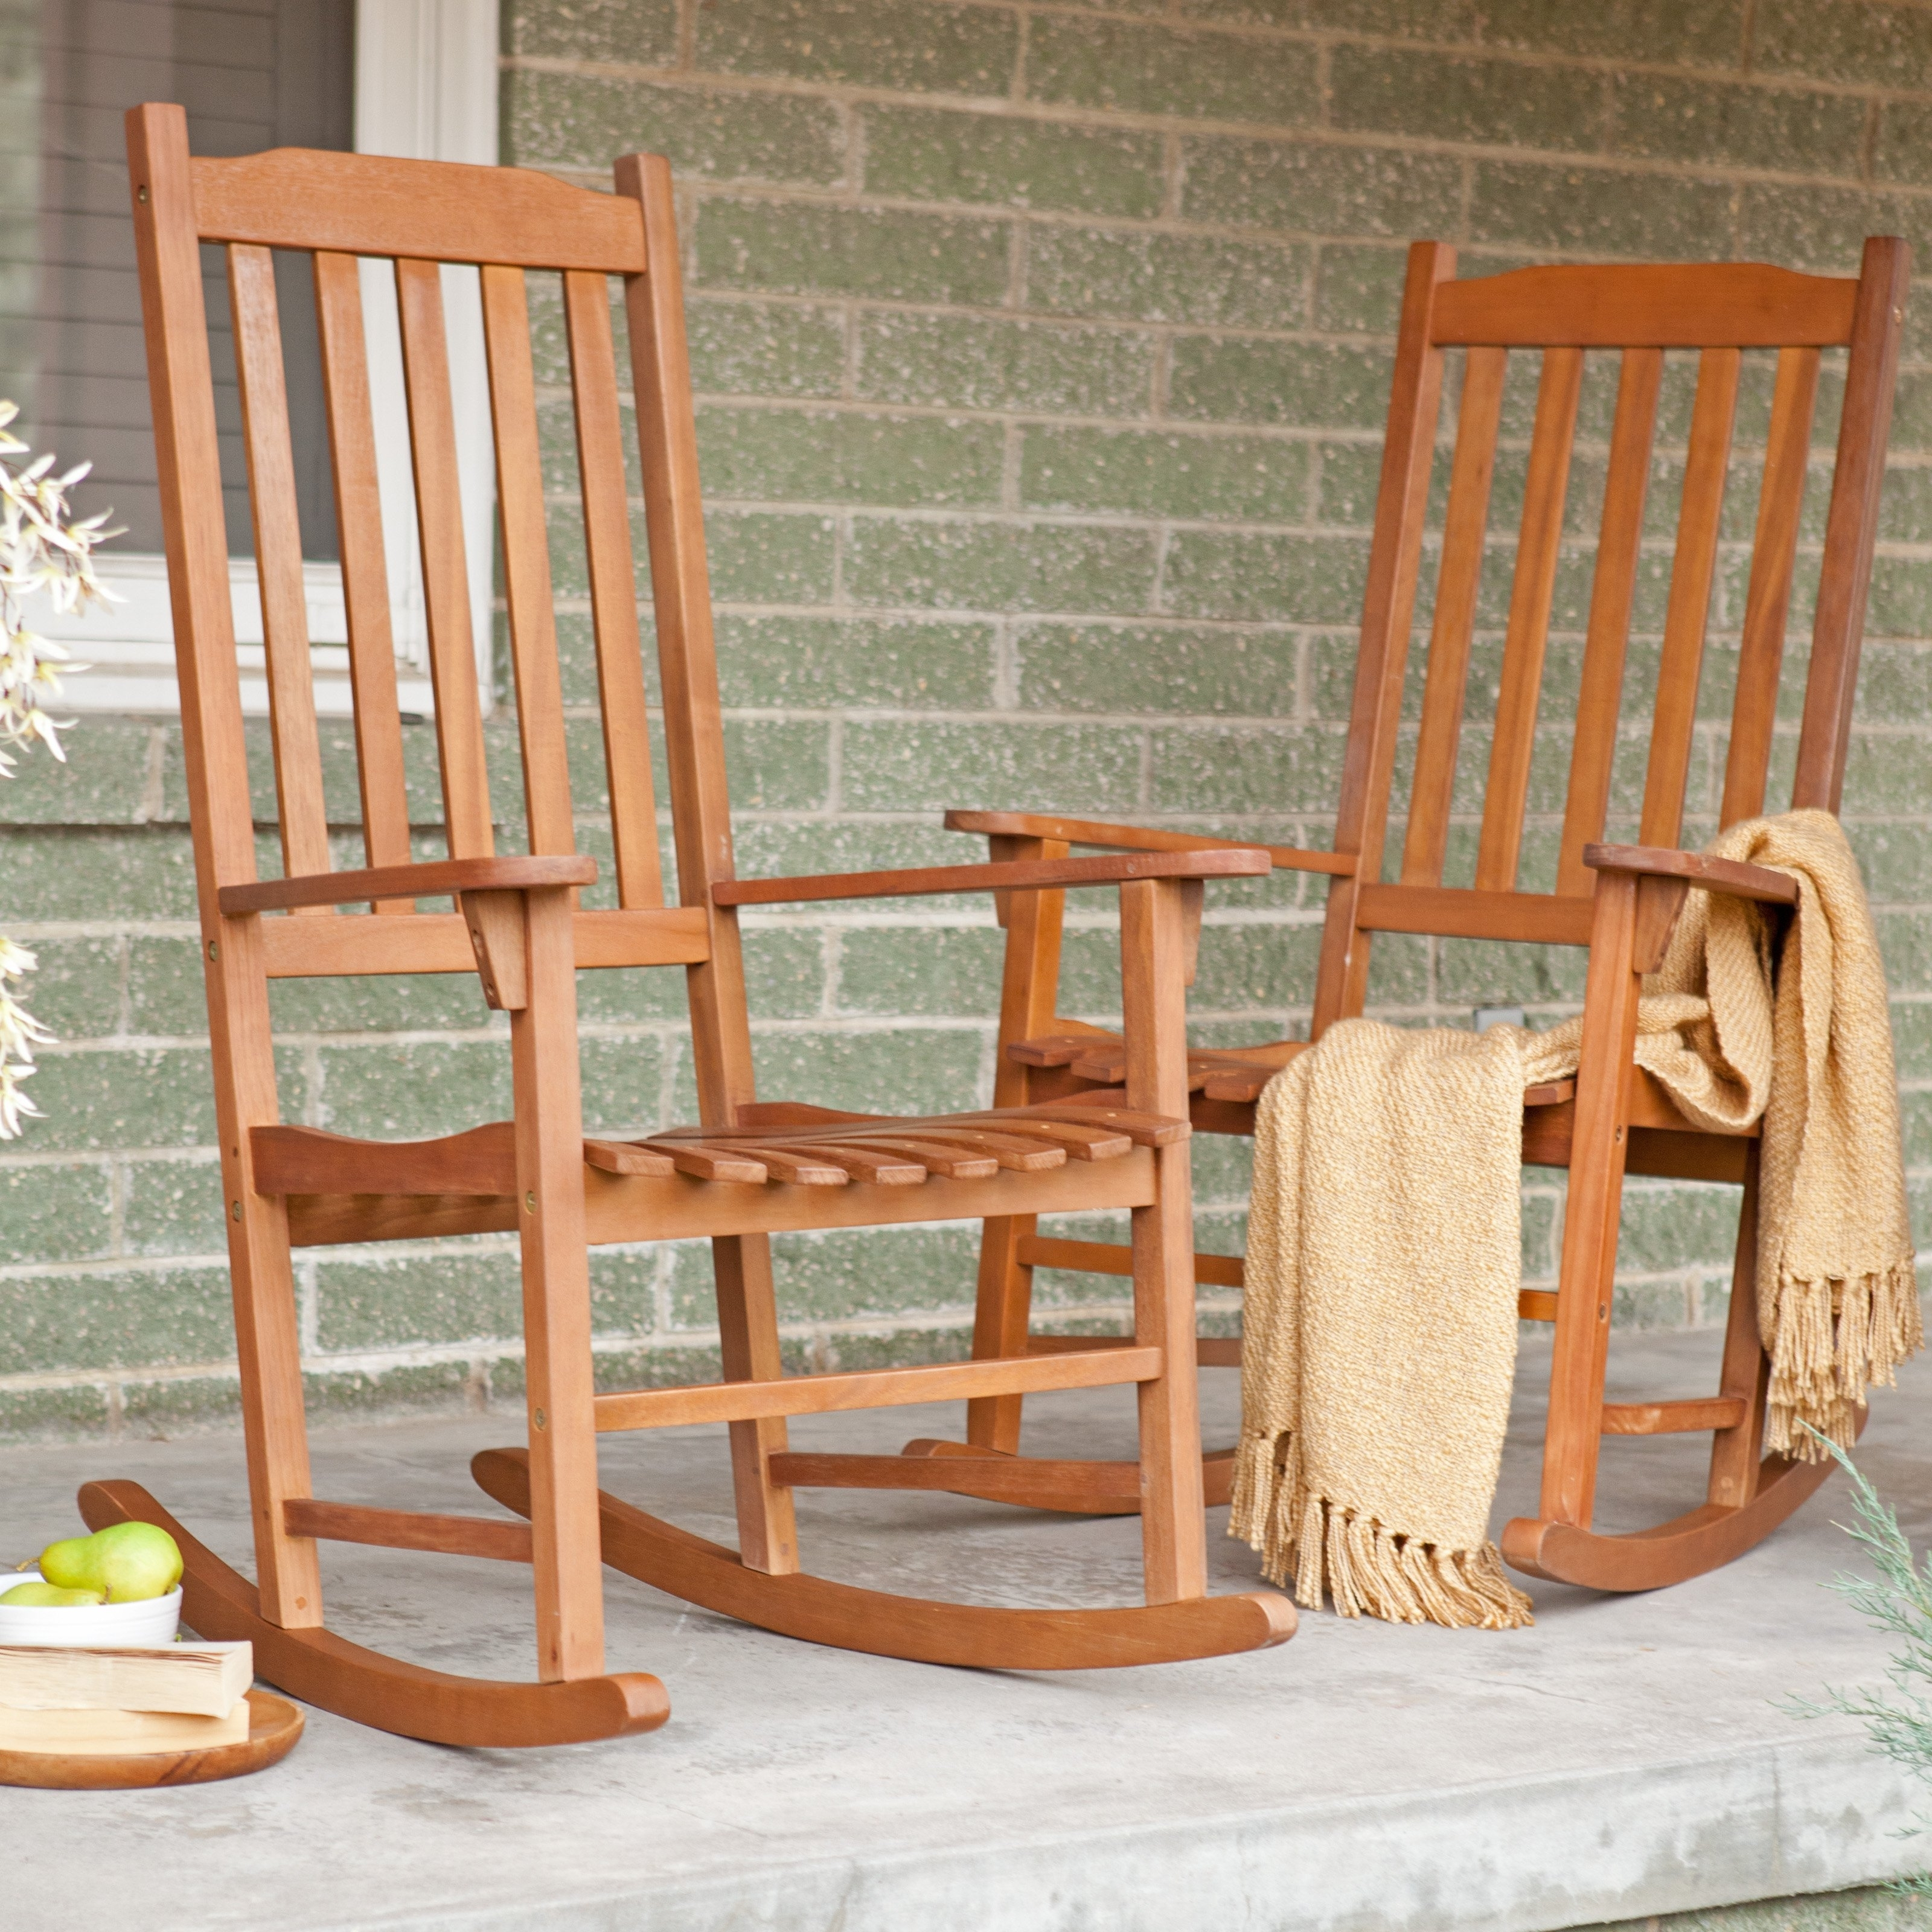 Newest Coral Coast Indoor/outdoor Mission Slat Rocking Chairs – Natural For Outside Rocking Chair Sets (View 8 of 15)